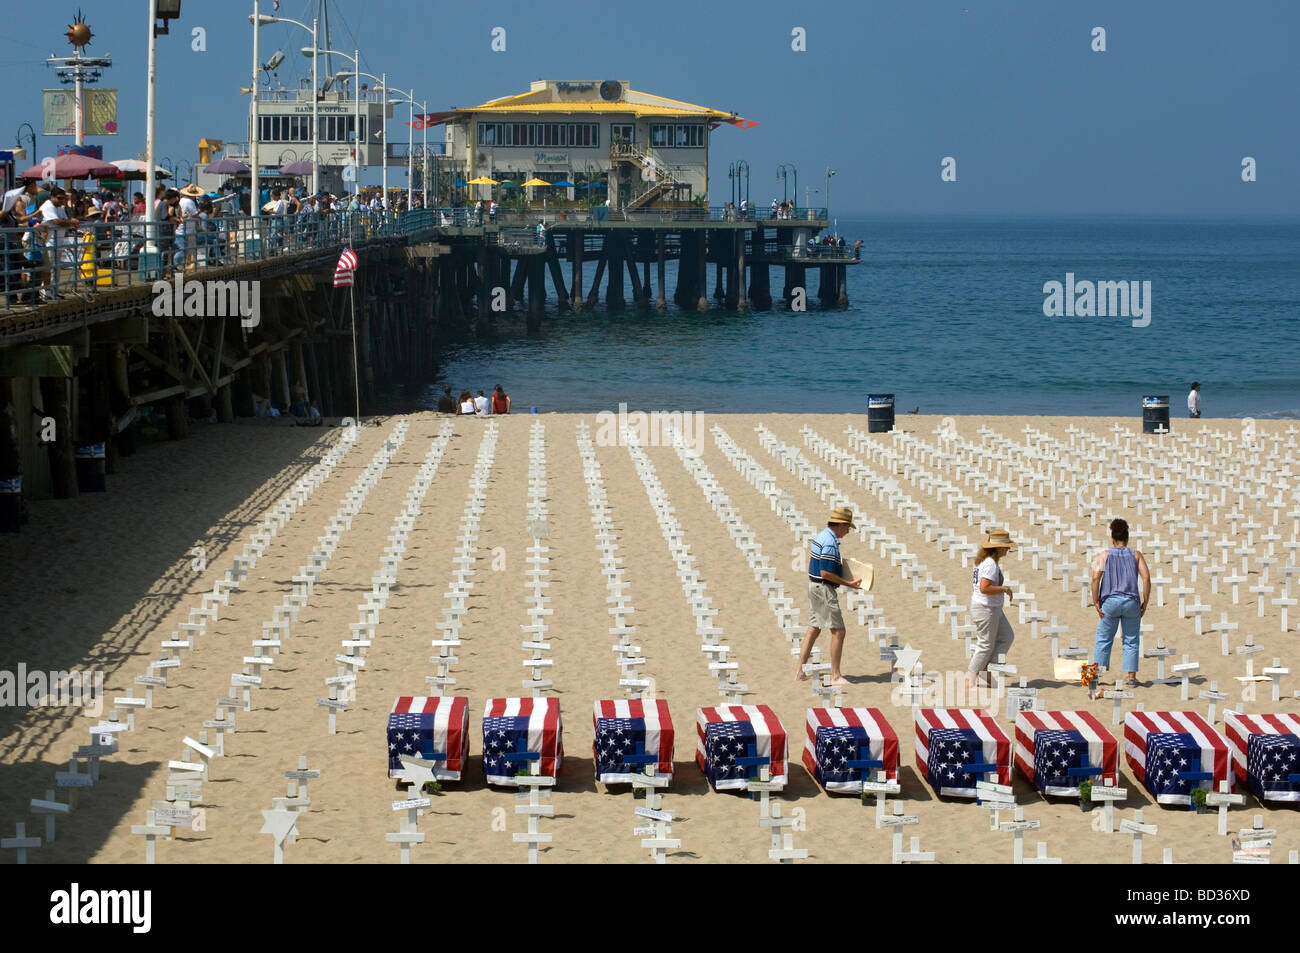 Monument to War Dead at Beach - Stock Image